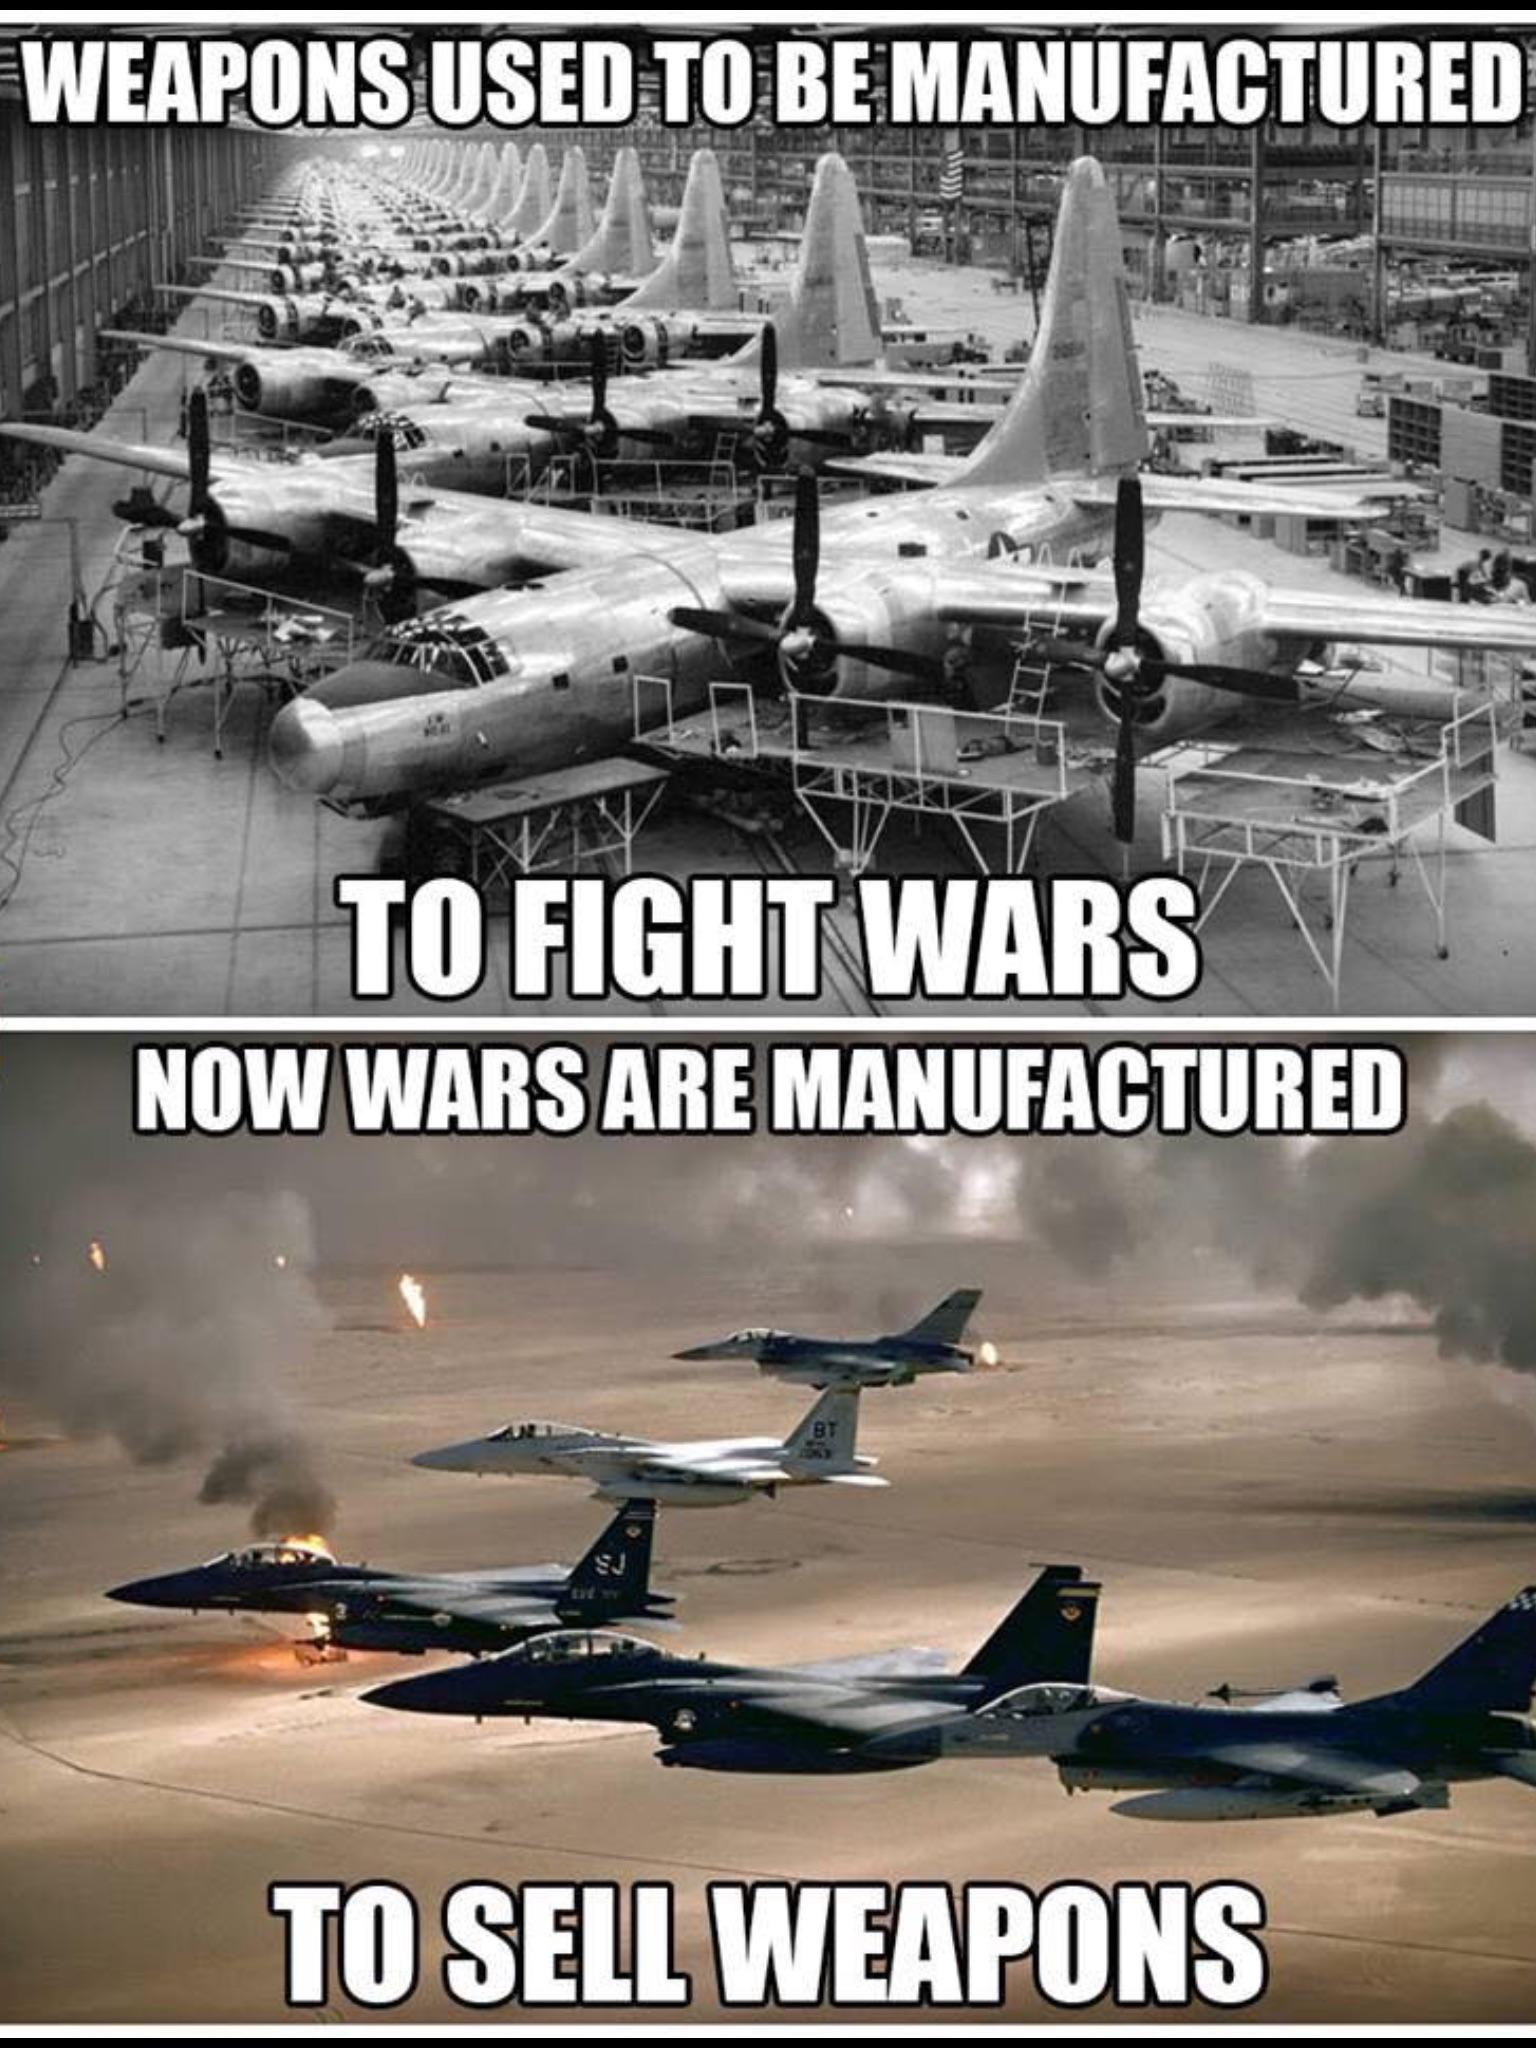 Sad truth of the military industrial complex